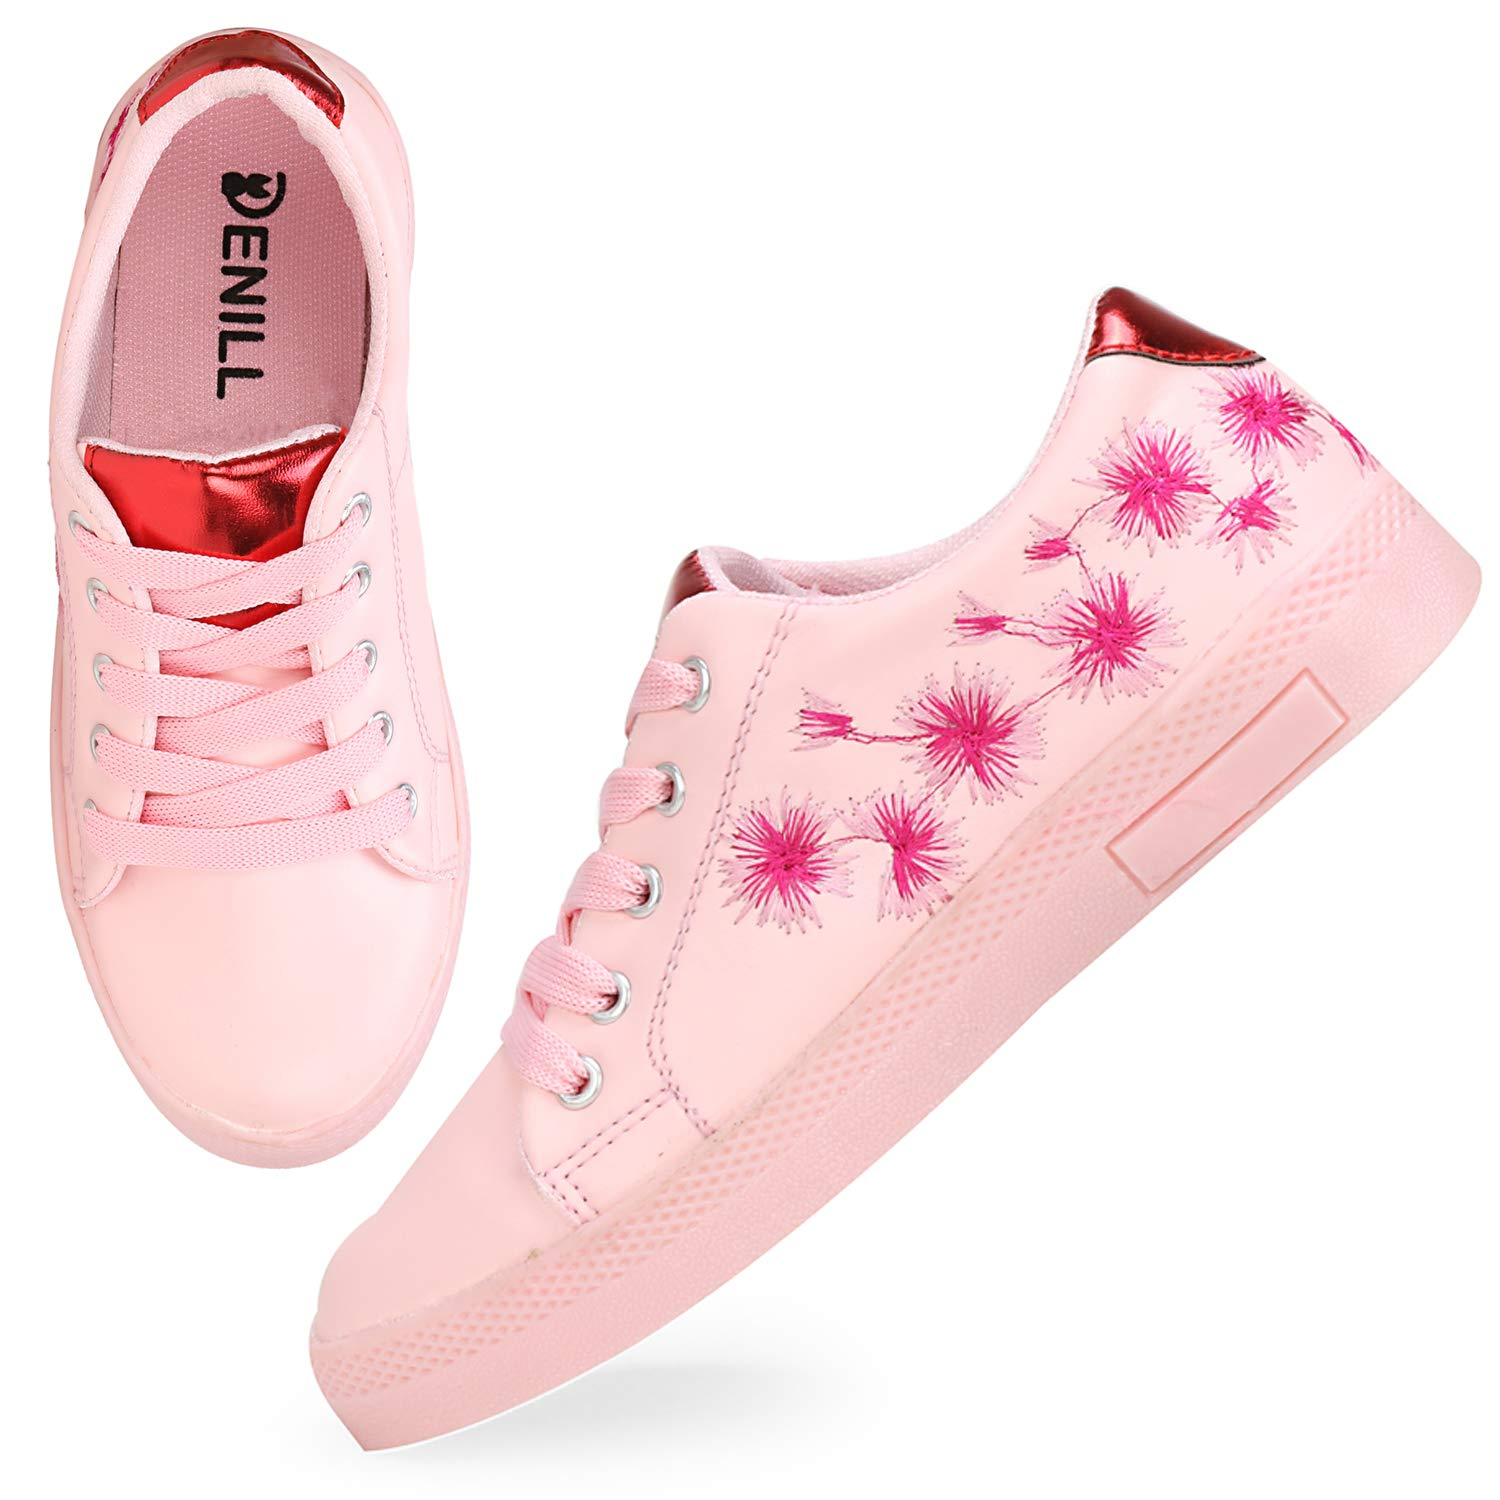 Denill Comfortable & Fashionable Sneaker Shoes for Women & Girls